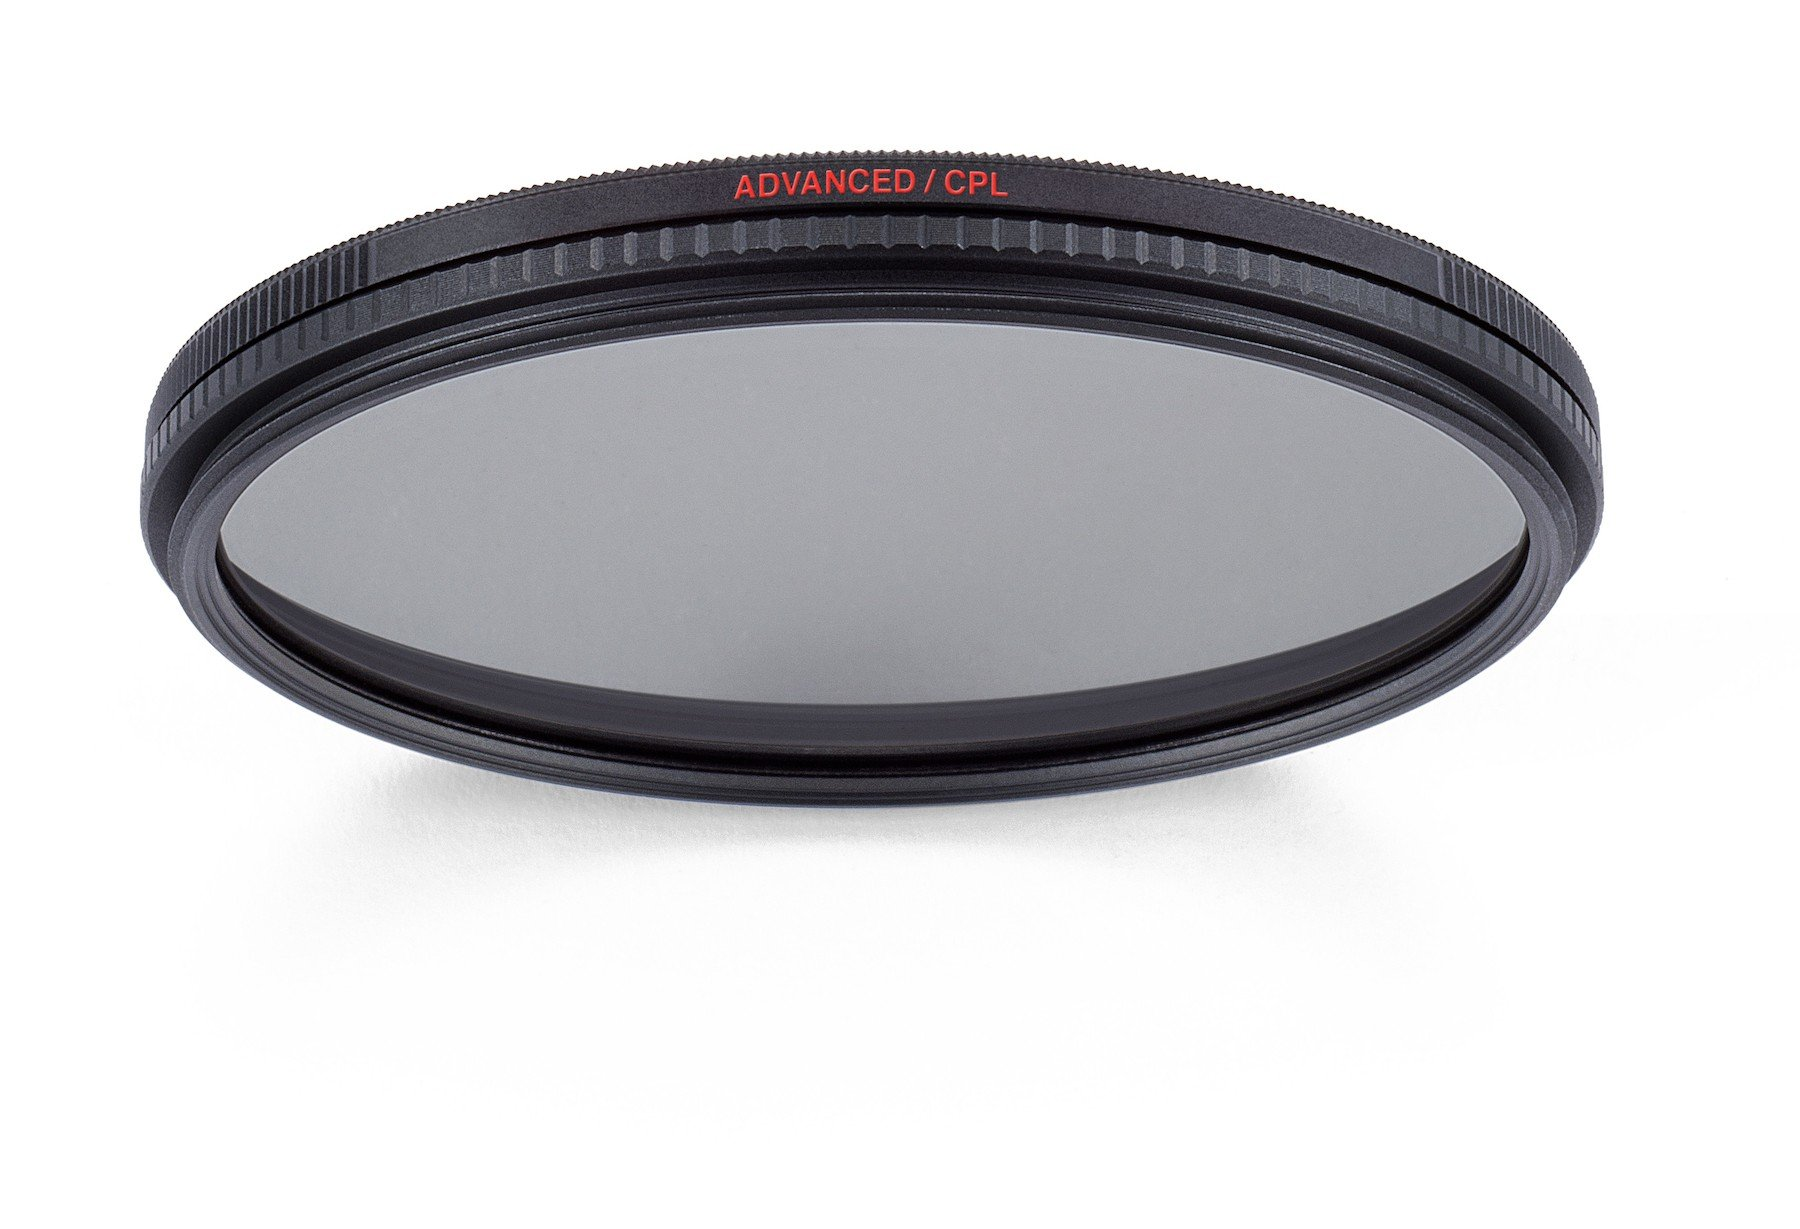 58mm Advanced Circular Polarizing Filter